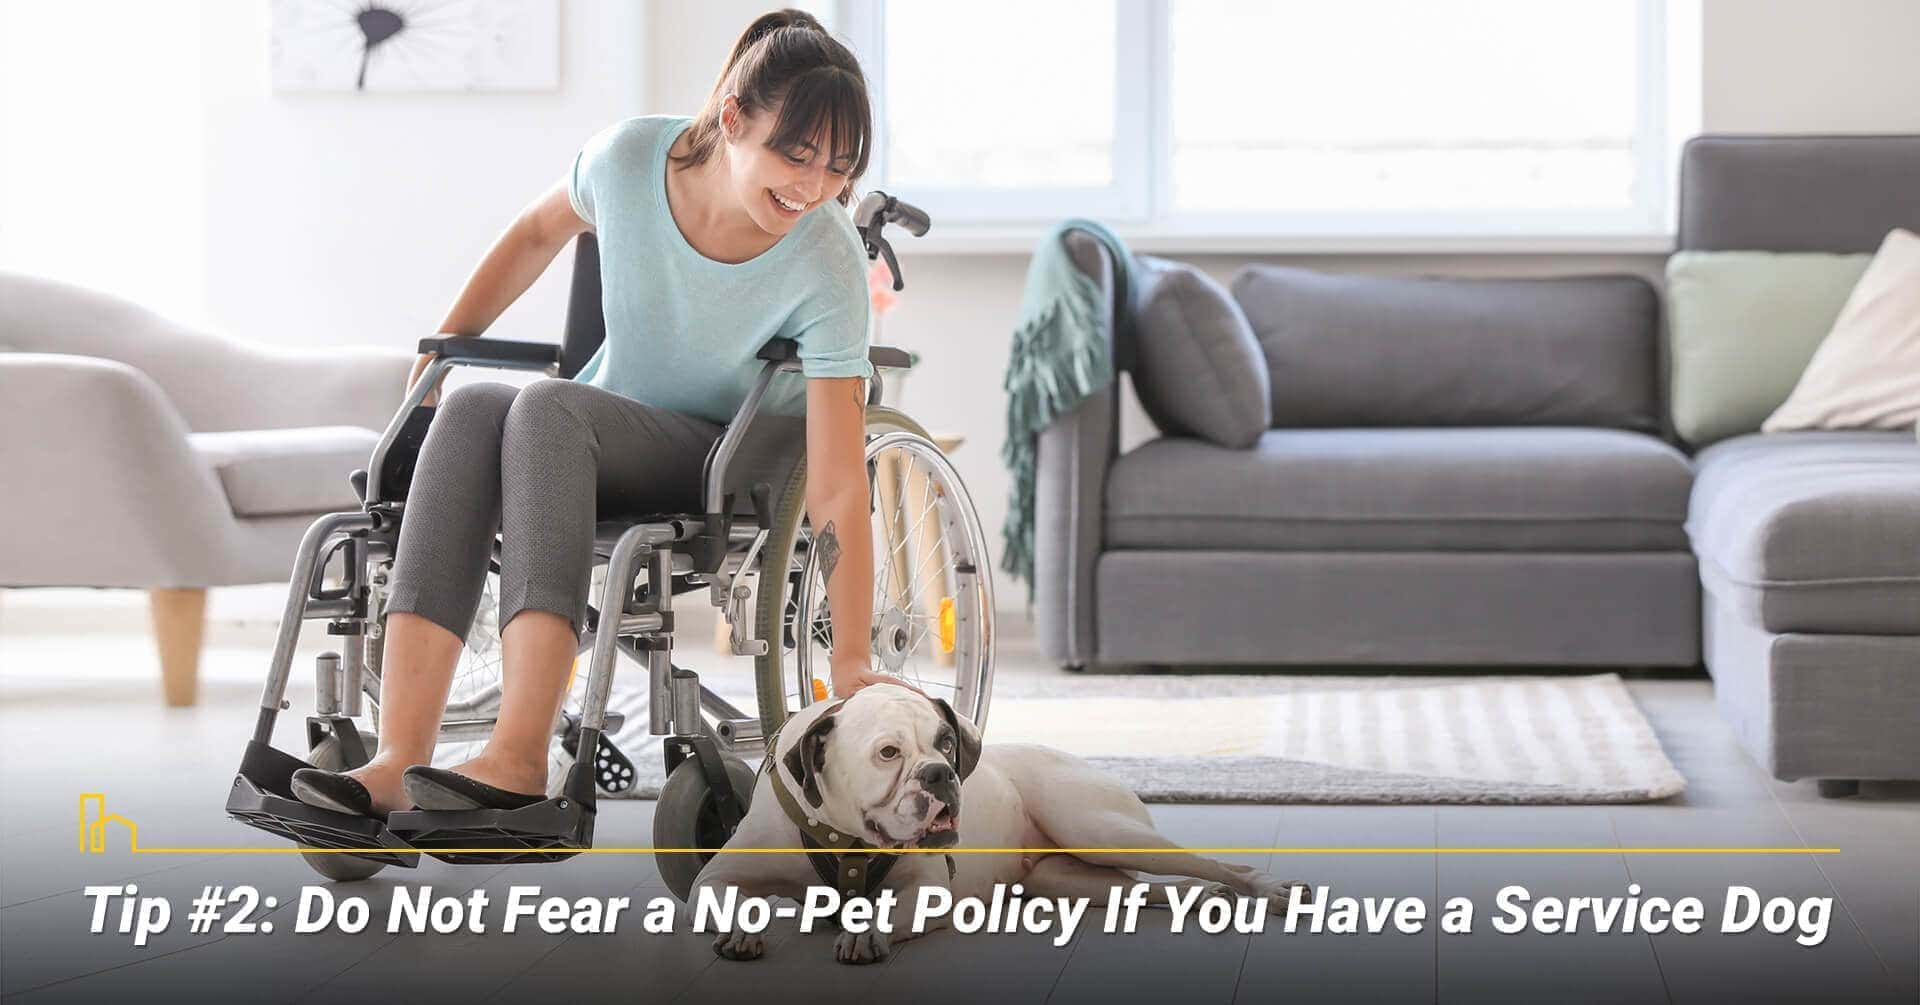 Tip #2: Do Not Fear a No-Pet Policy If You Have a Service Dog, can have service animals